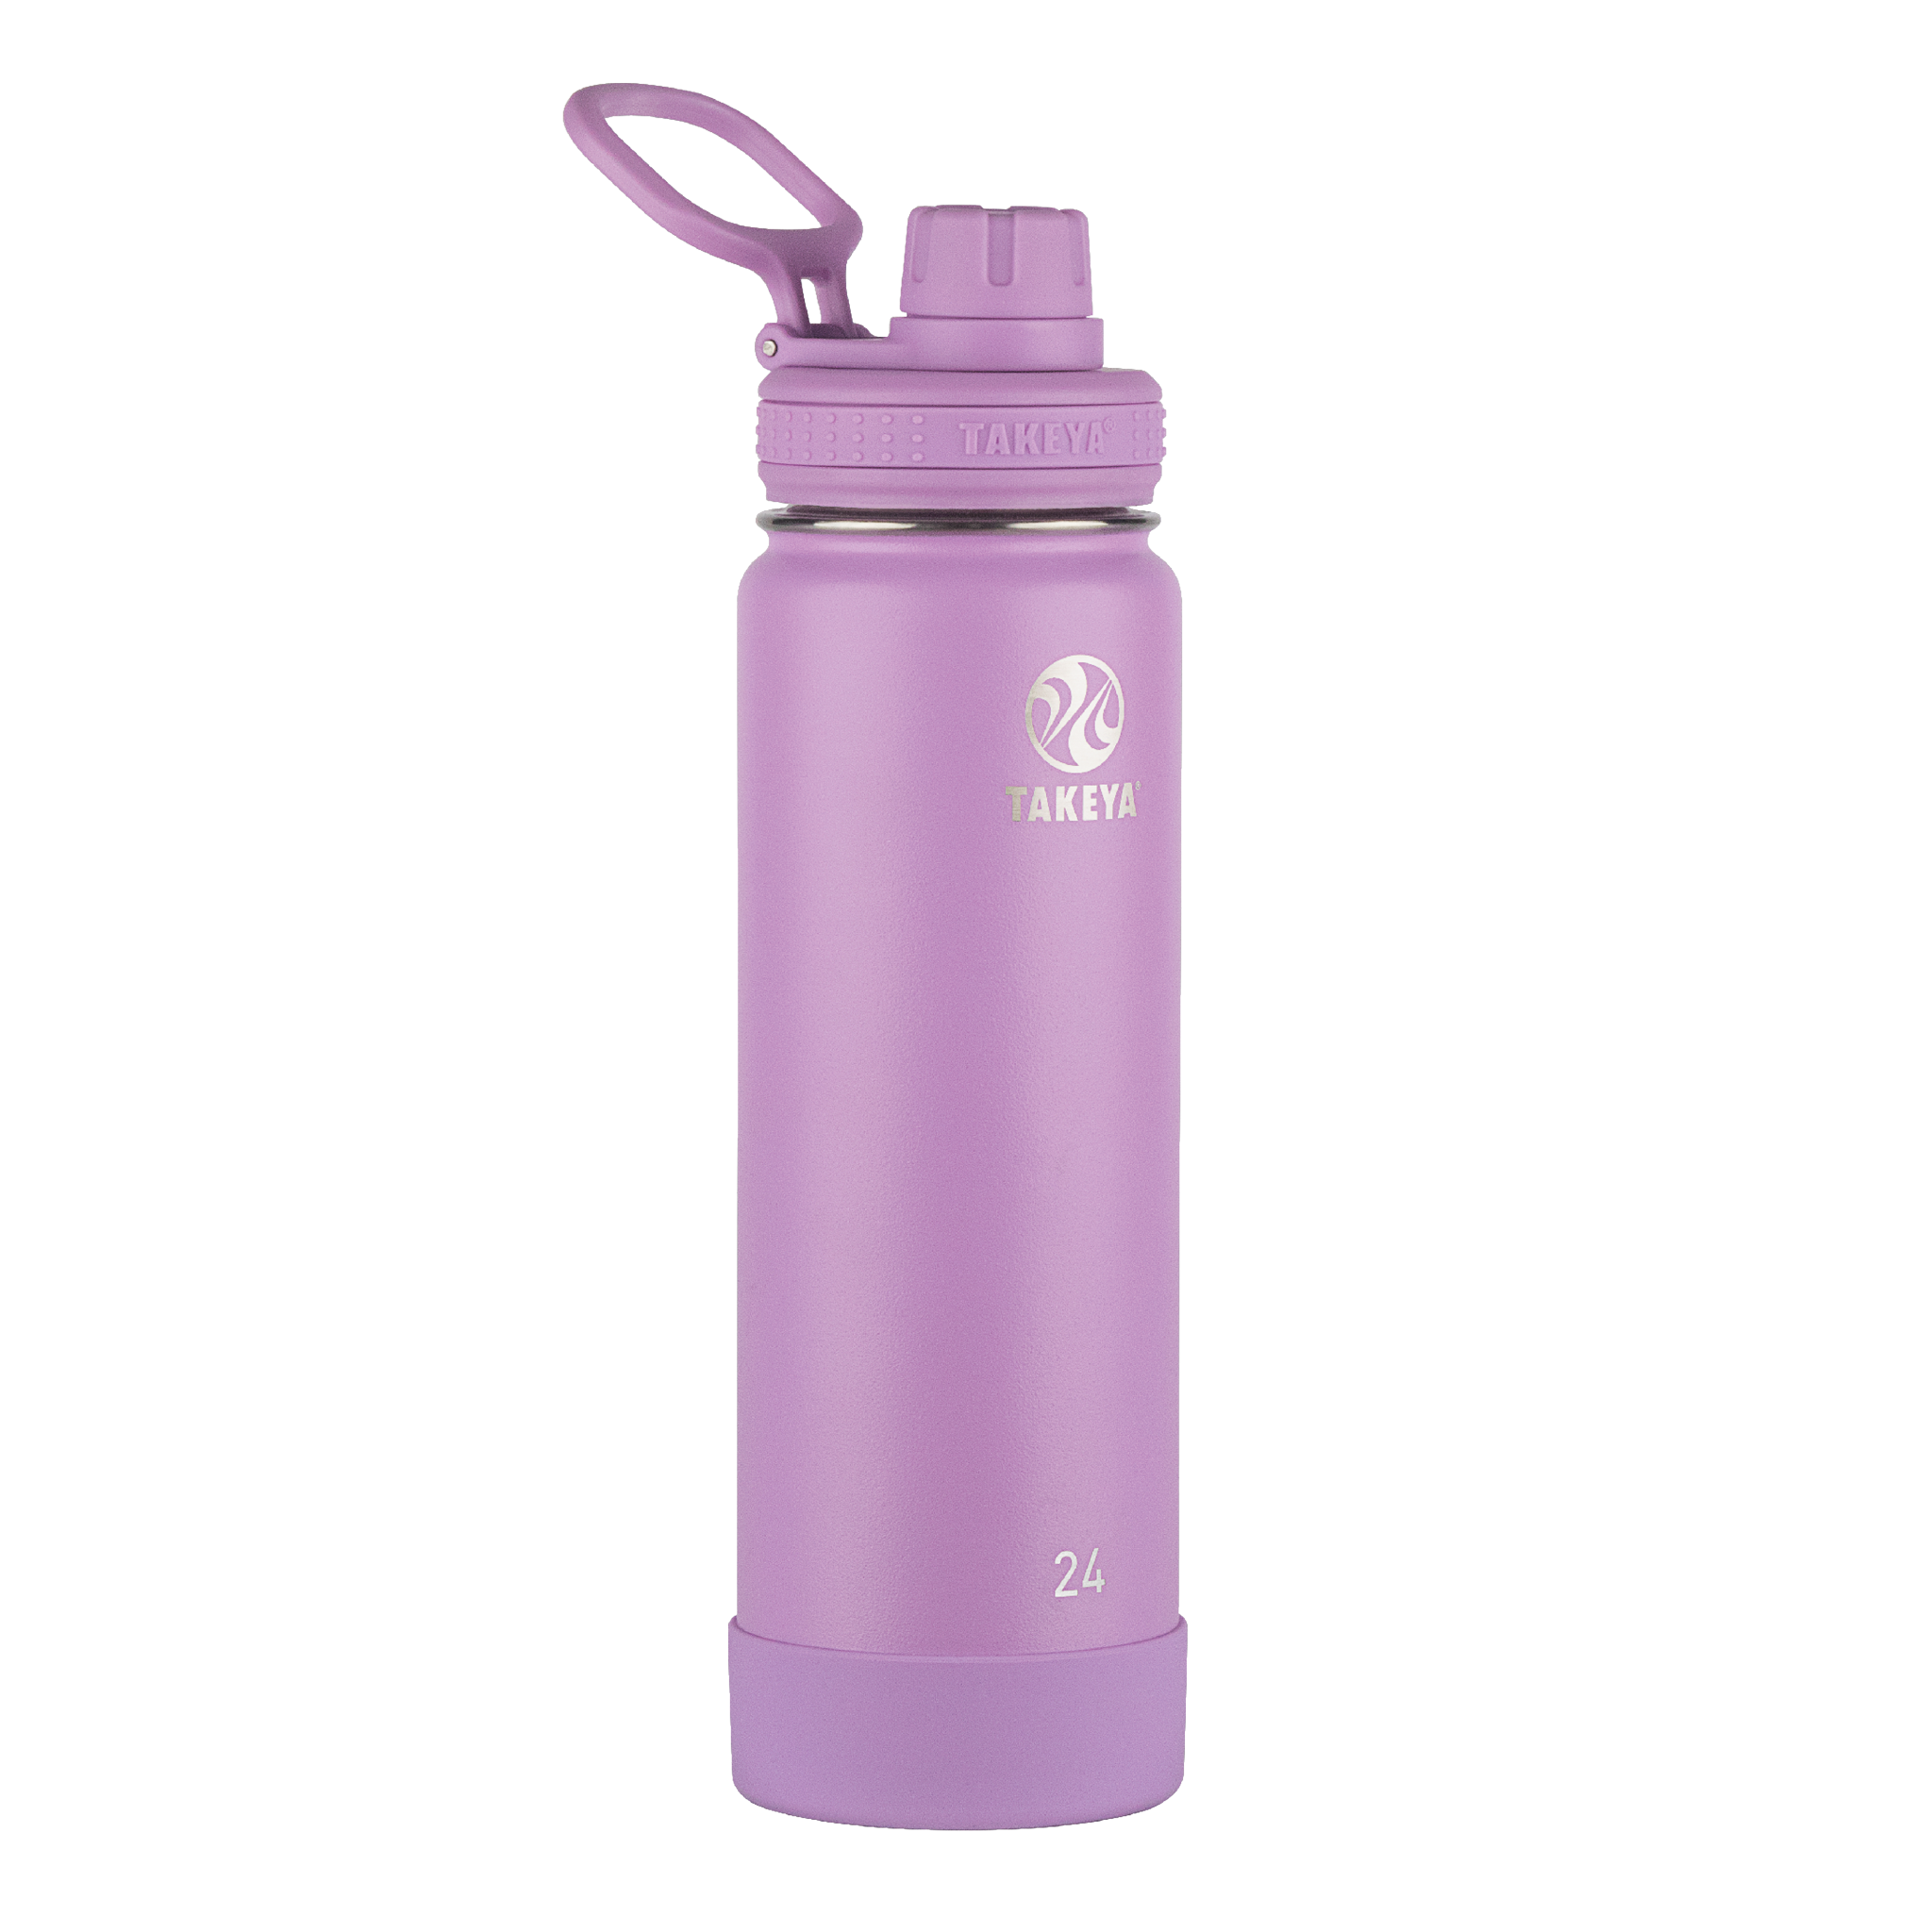 Takeya Actives Stainless Steel Water Bottle w/Spout lid, 24oz Lilac